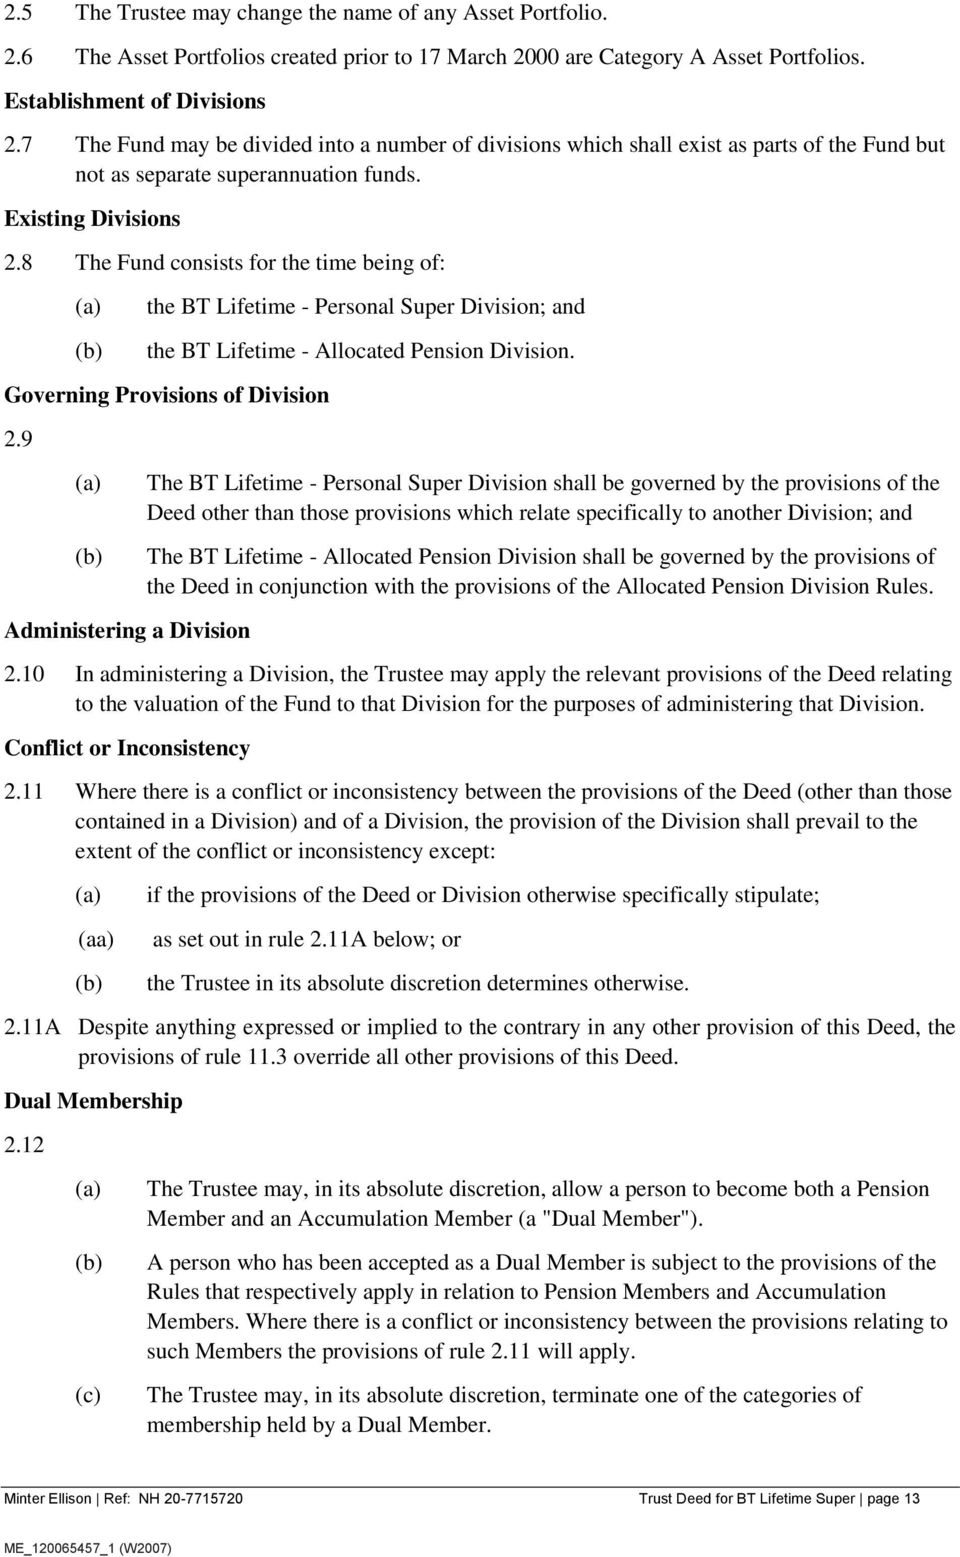 8 The Fund consists for the time being of: the BT Lifetime - Personal Super Division; and the BT Lifetime - Allocated Pension Division. Governing Provisions of Division 2.